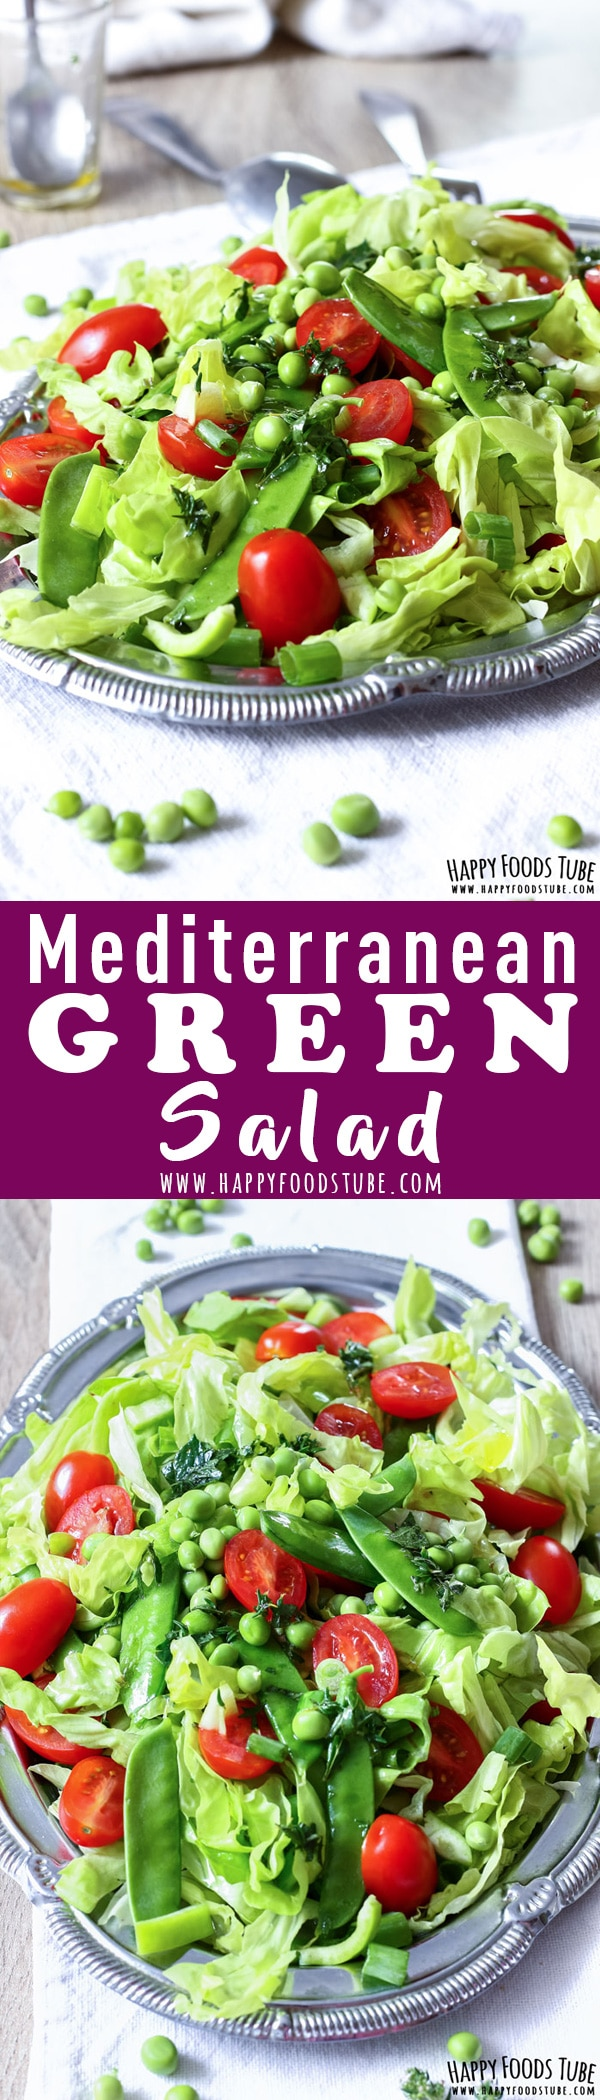 This crispy Mediterranean green salad is easy to make & ready in 10 minutes. It's perfect for outdoor entertaining and grill parties. Vegetarian Mediterranean diet recipe